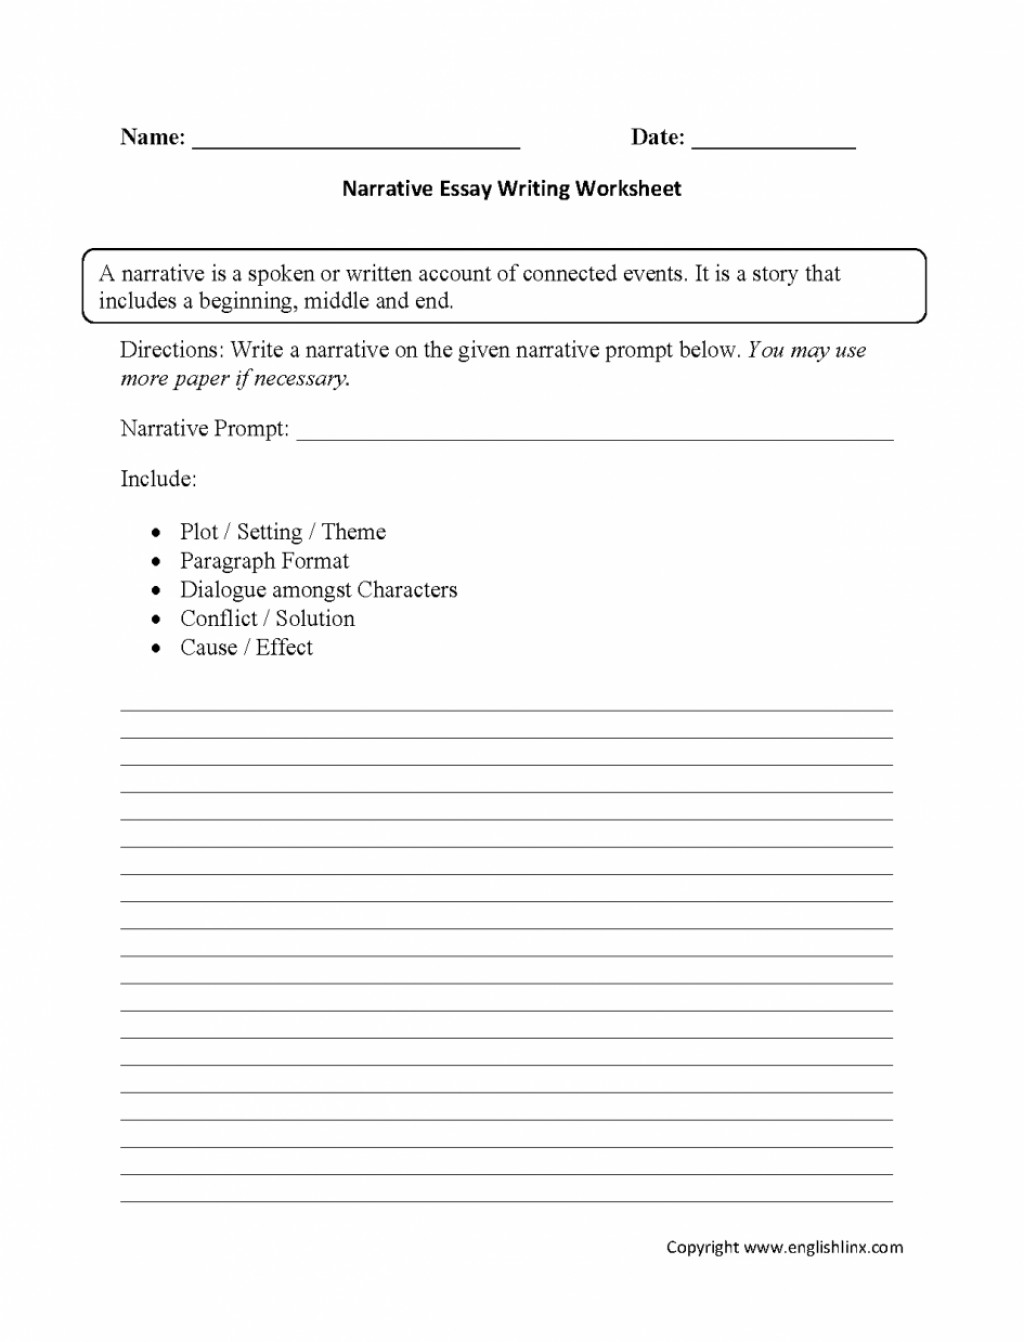 002 Essay Grader Example 3rd Grade Paragraph Writing Worksheets Download Free Third Printa Worksheet Awful Gre Python Grading Software Large